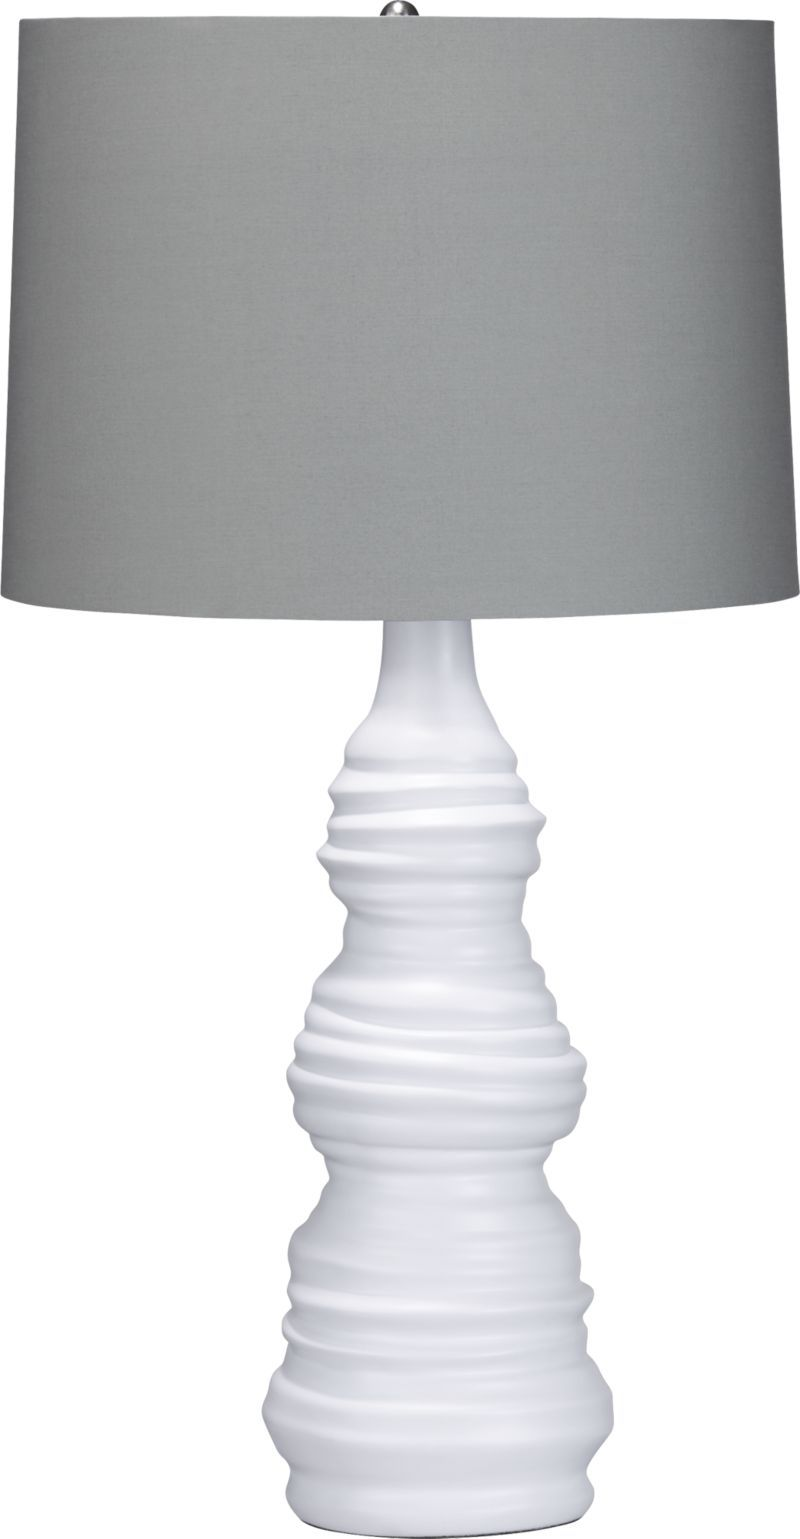 Nina Table Lamp I Crate And Barrel Table Lamp Lamp Simple Lamp